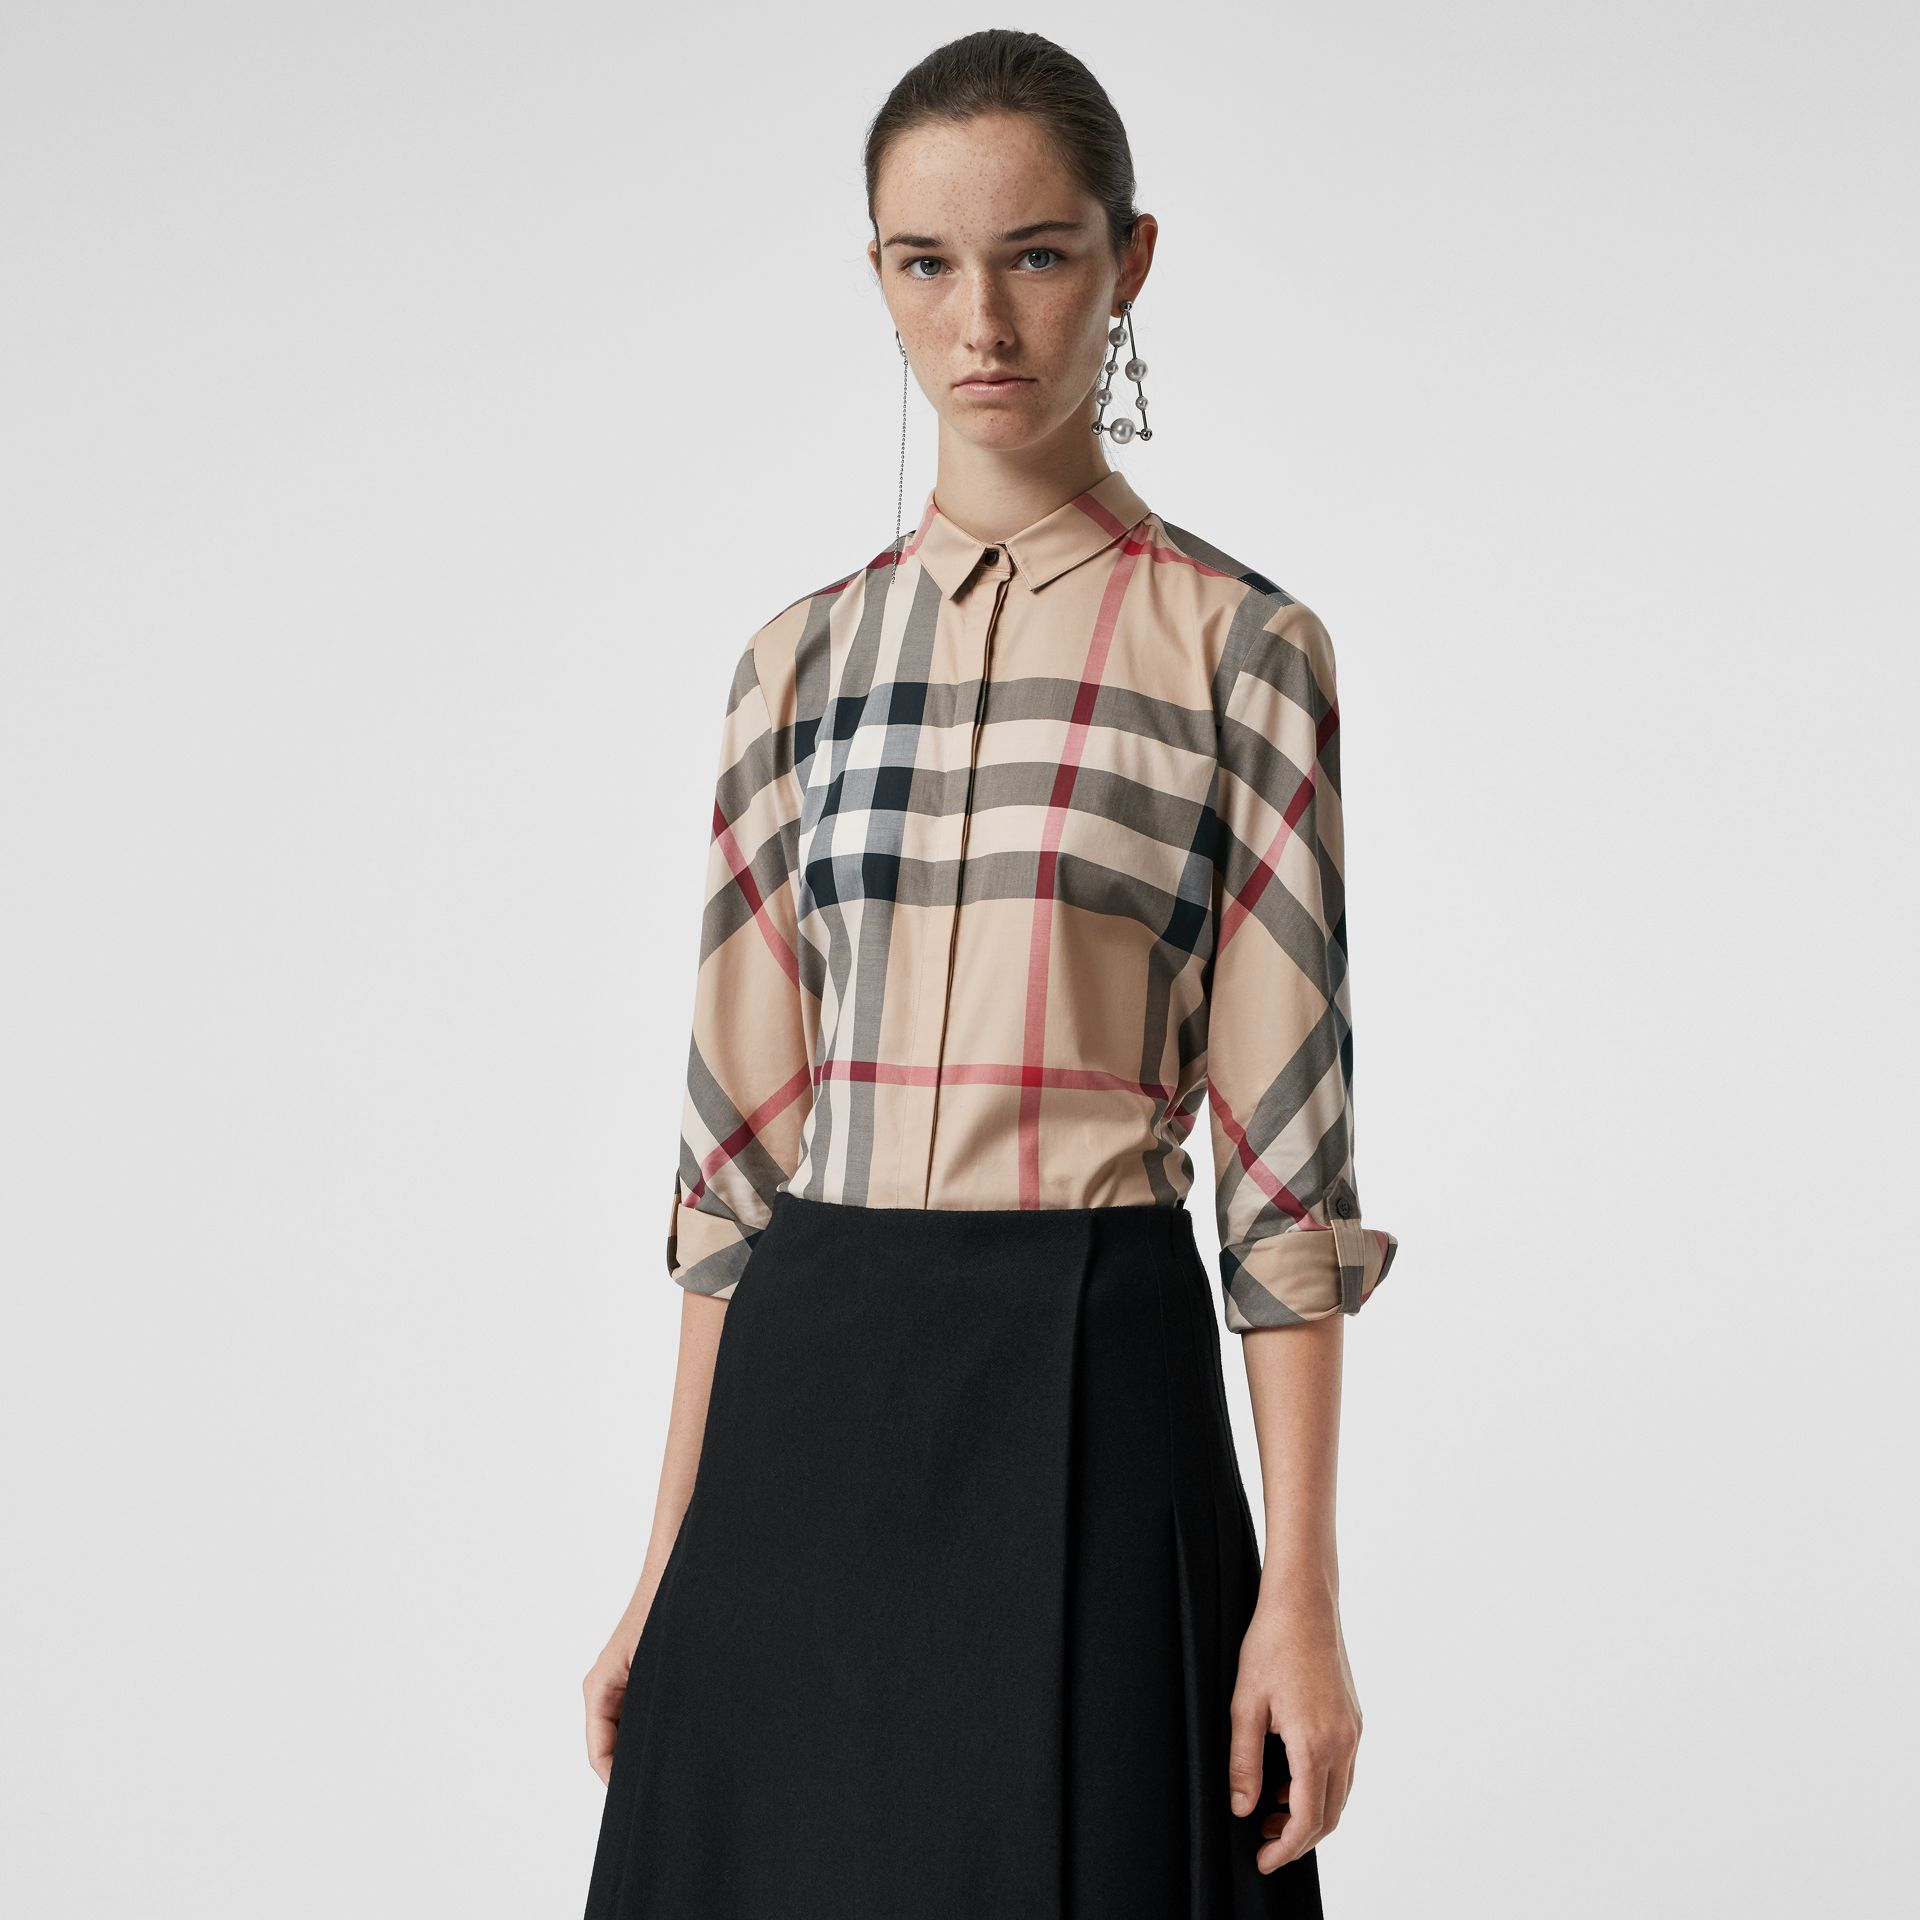 Bluse aus Stretchbaumwolle in Check (New Classic) - Damen | Burberry - Galerie-Bild 4